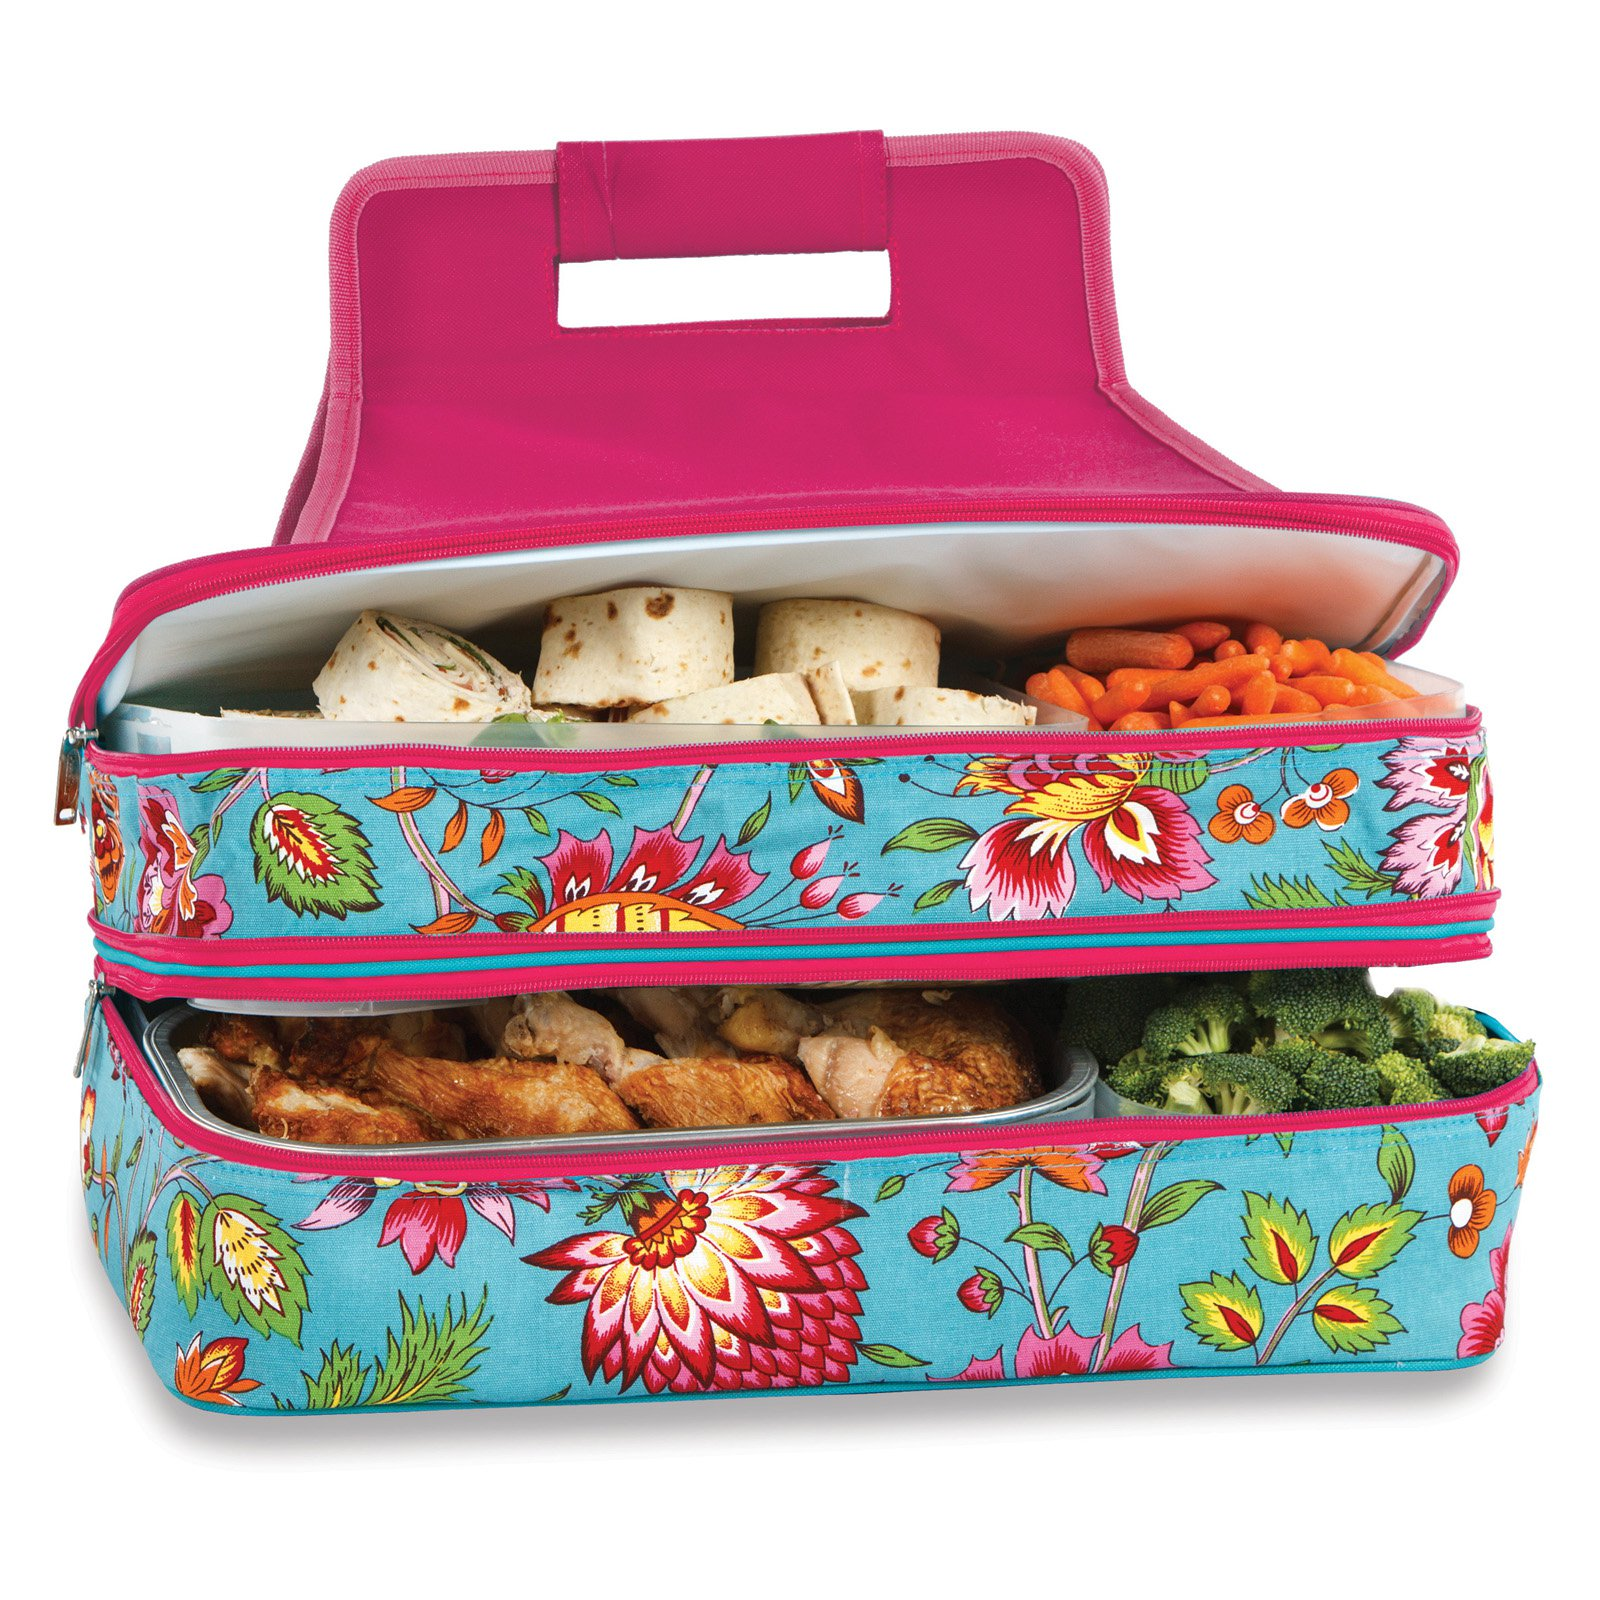 Picnic Plus Entertainer Cocoa Cosmos Hot and Cold Food Cooler Carrier